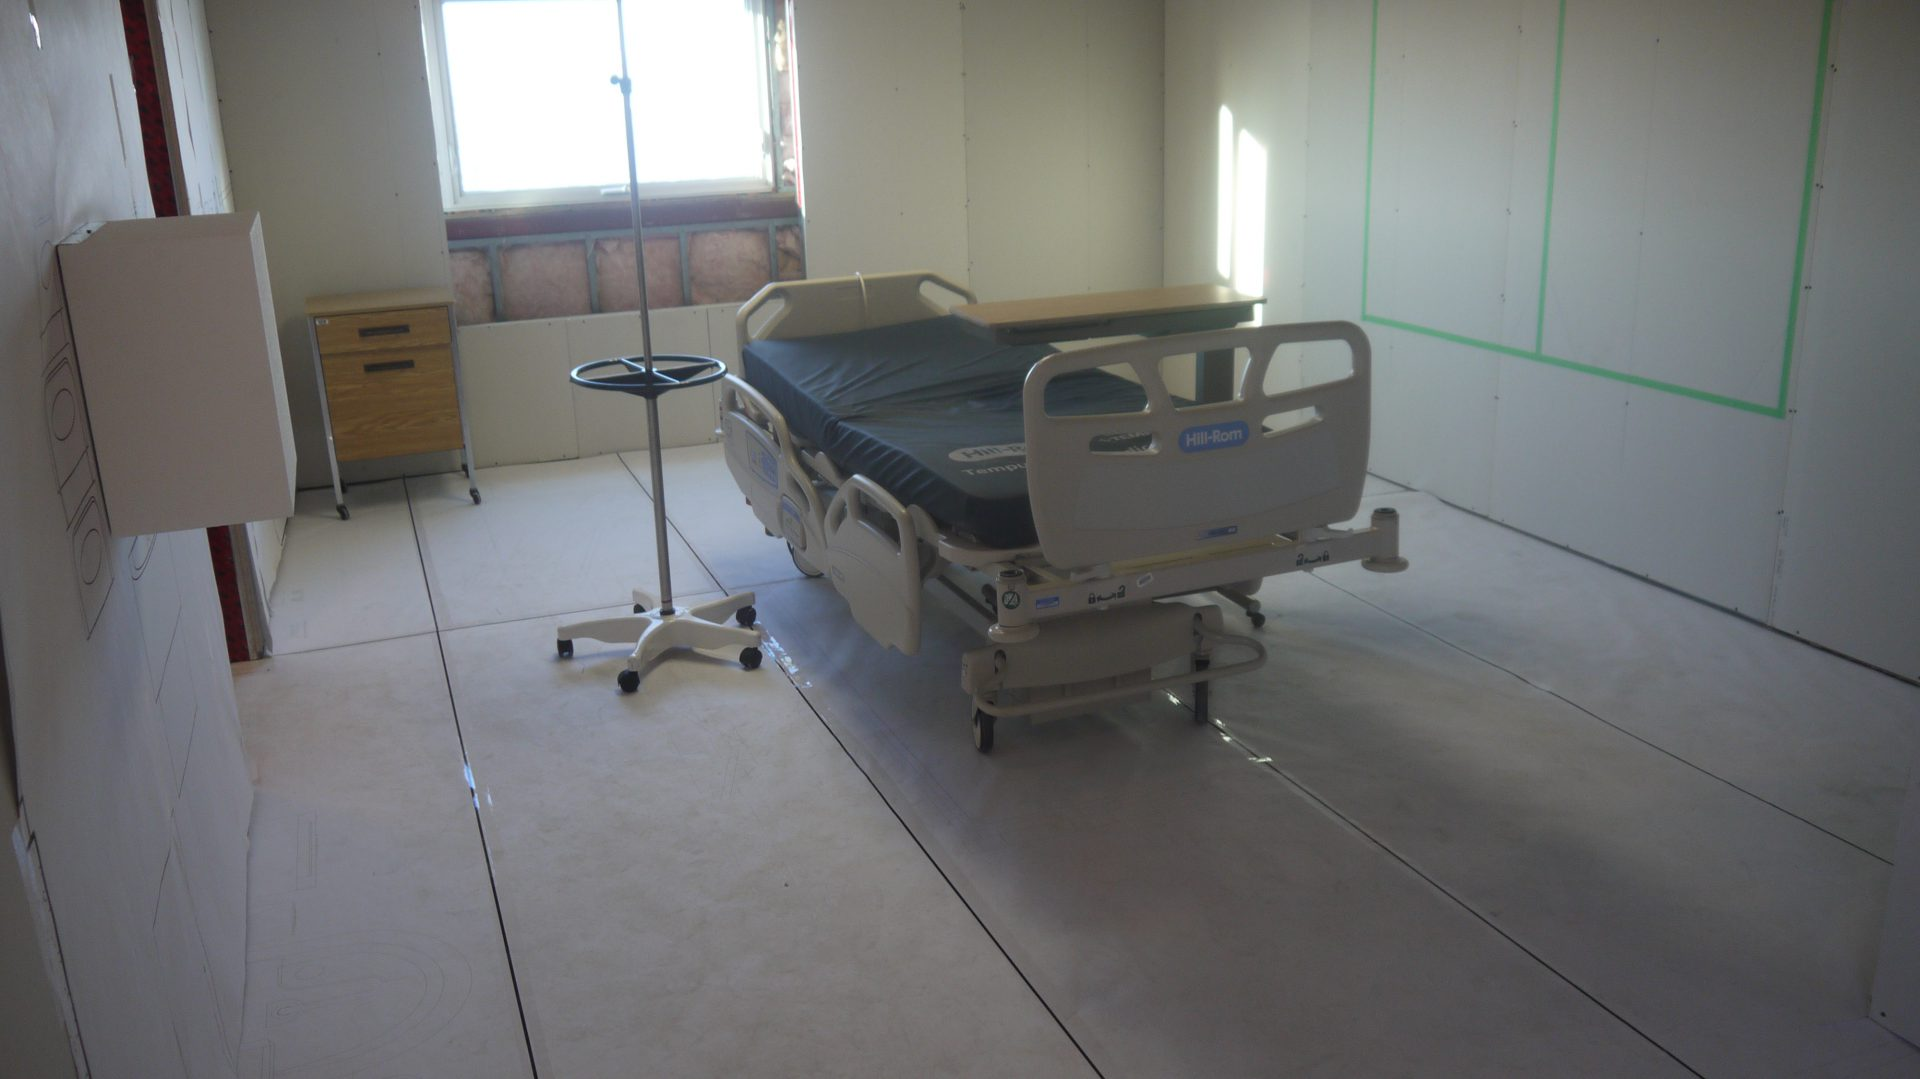 A mock-up design of a single patient room.